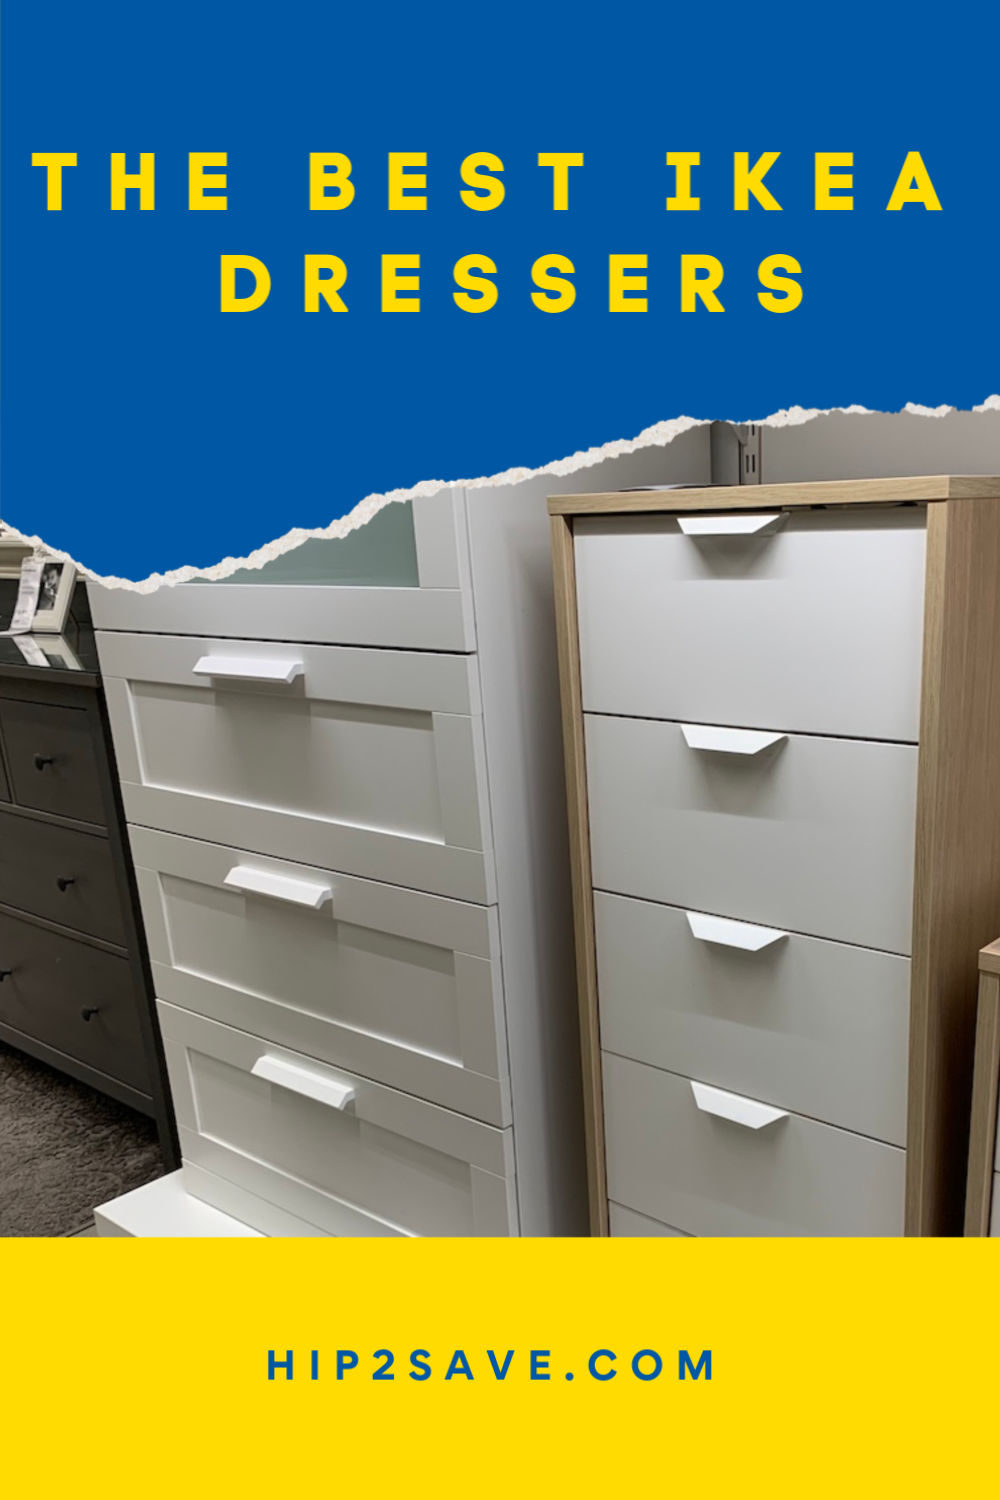 Picture of: Tall Skinny Closet Dresser Image Of Bathroom And Closet